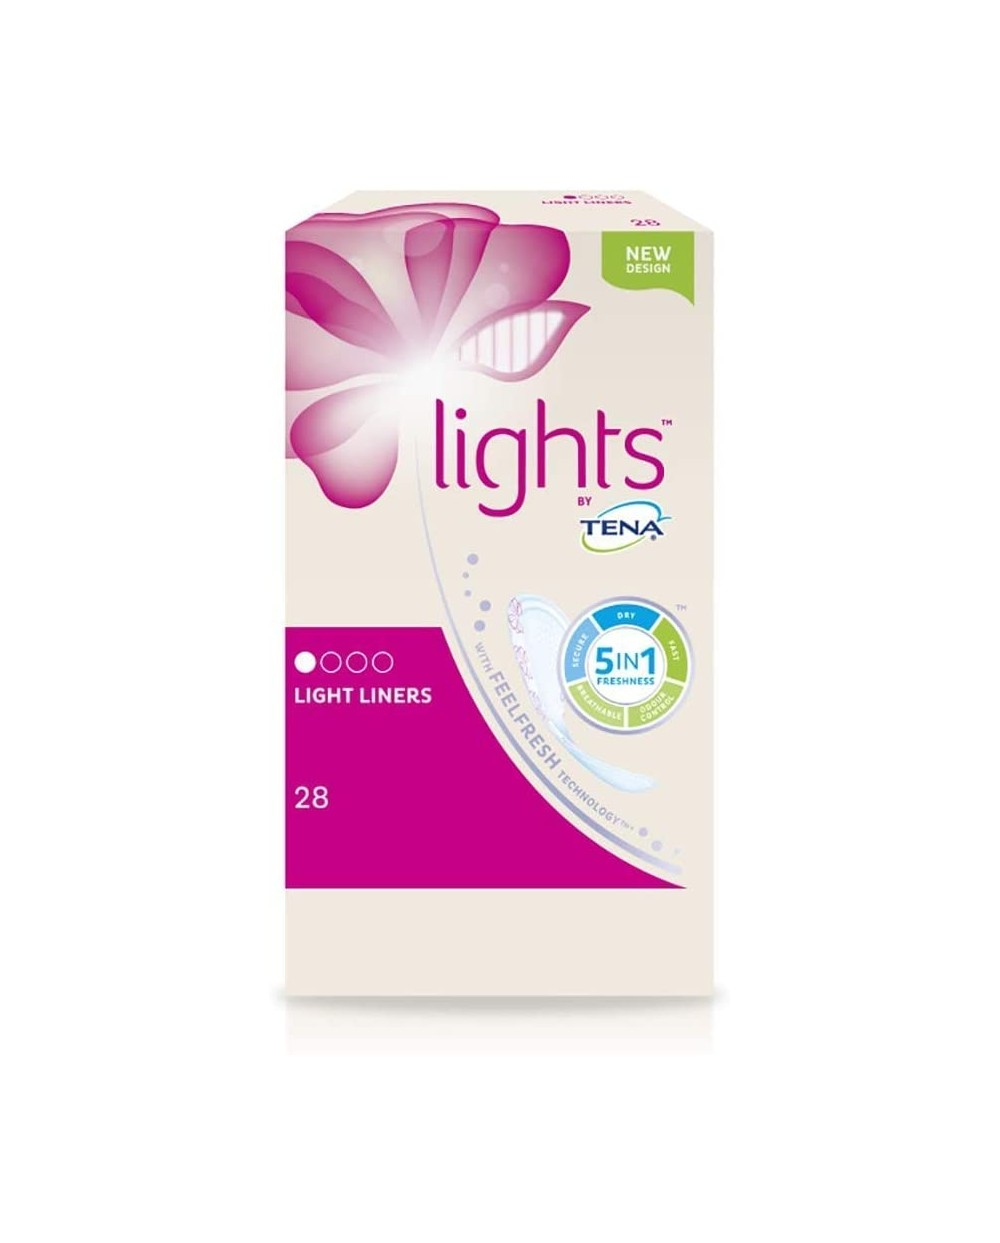 Lights by TENA - Light Liners - 28 protections